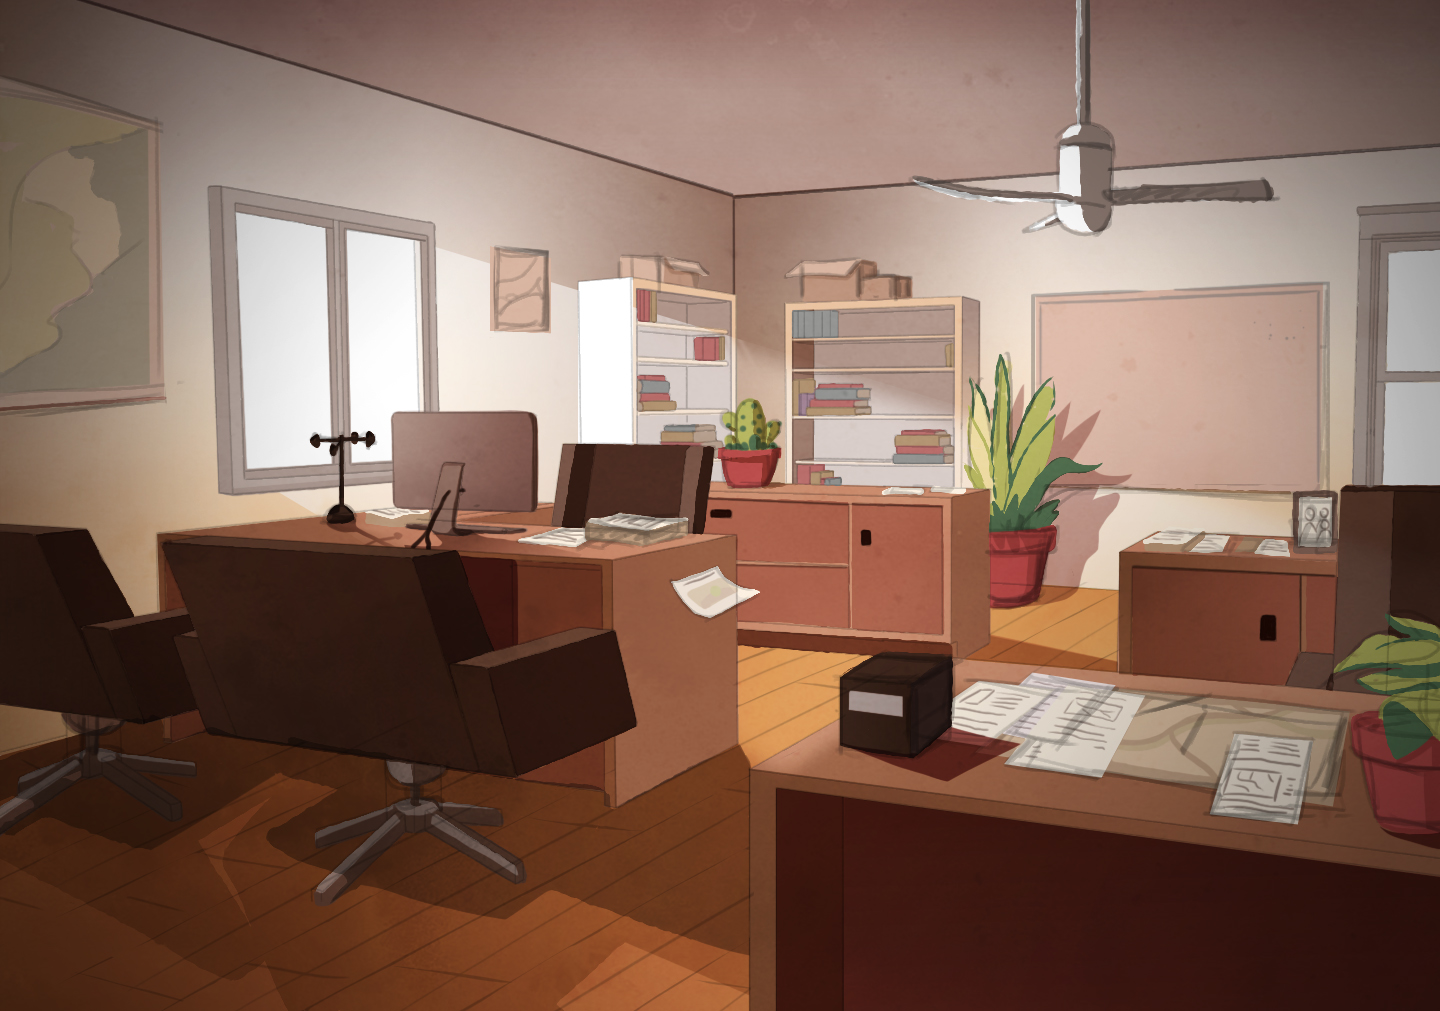 Background 3: Office 1